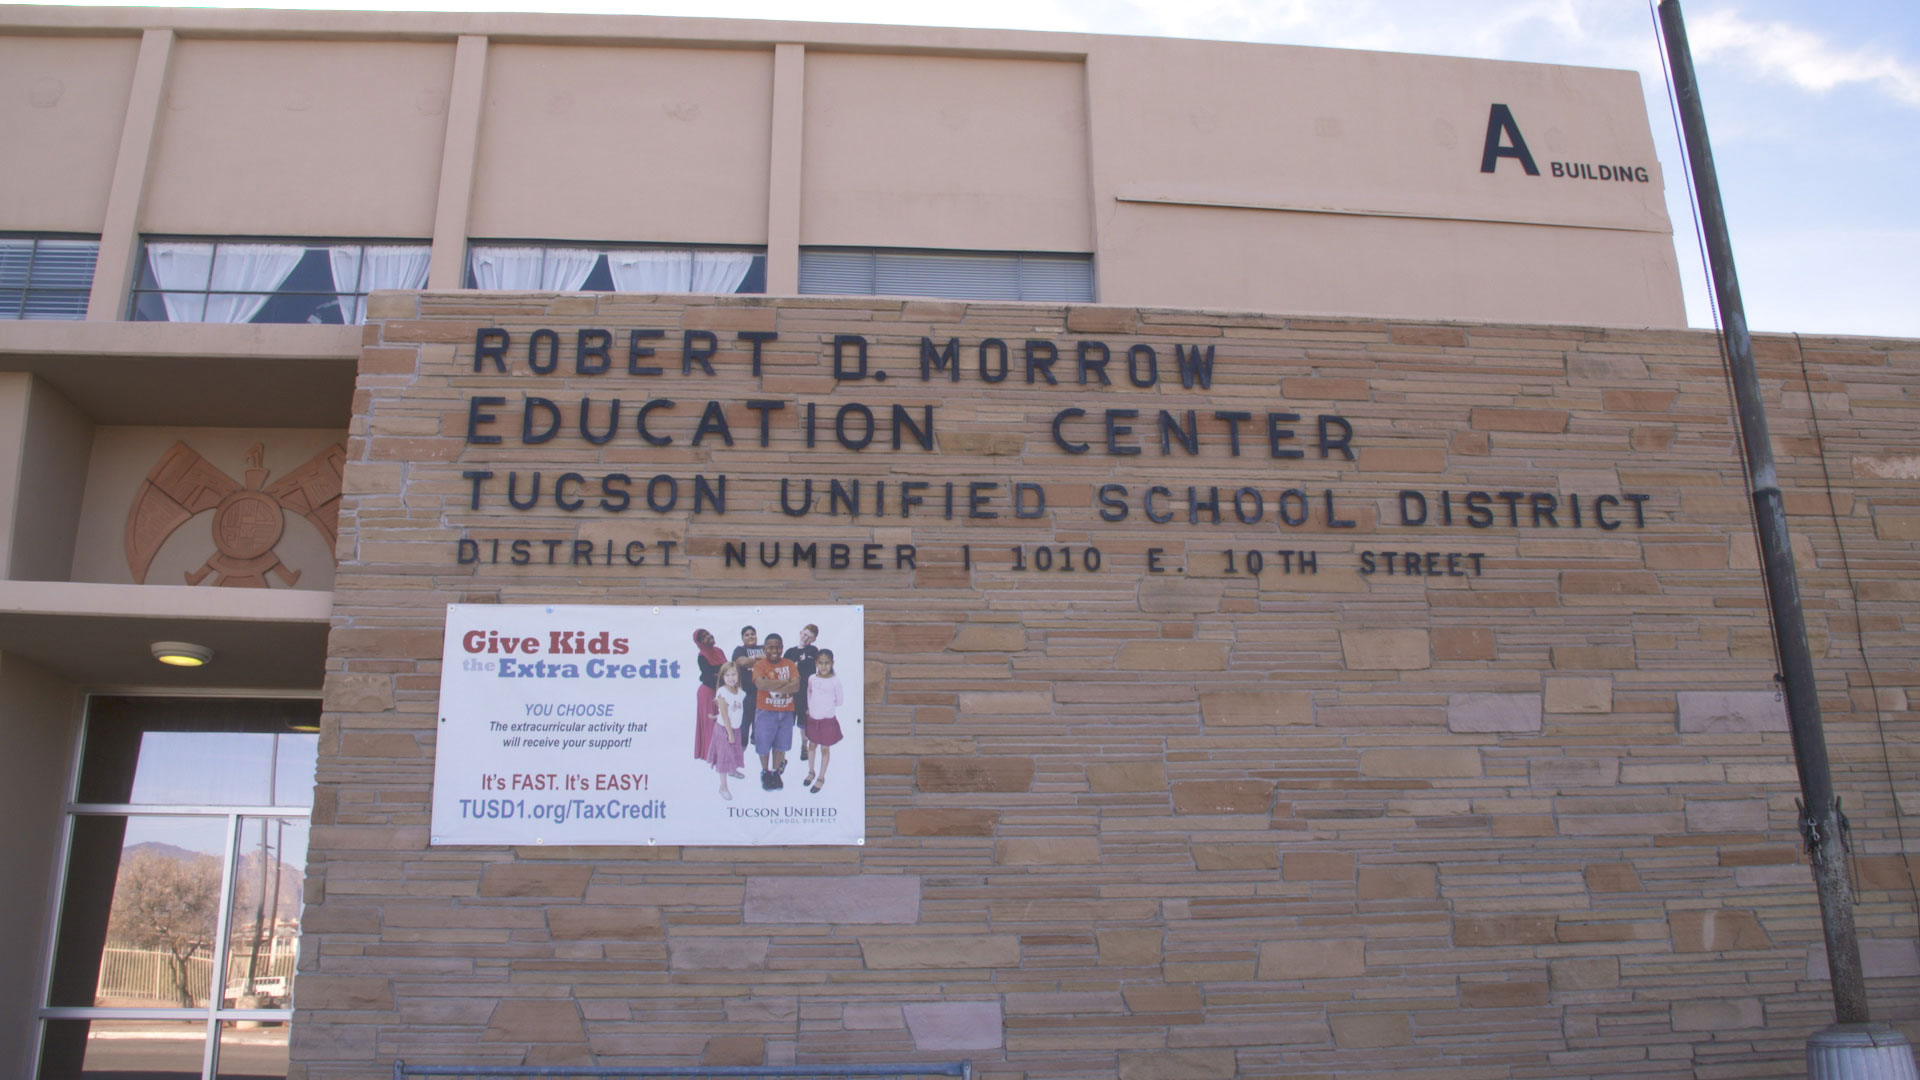 The Tucson Unified School District building.